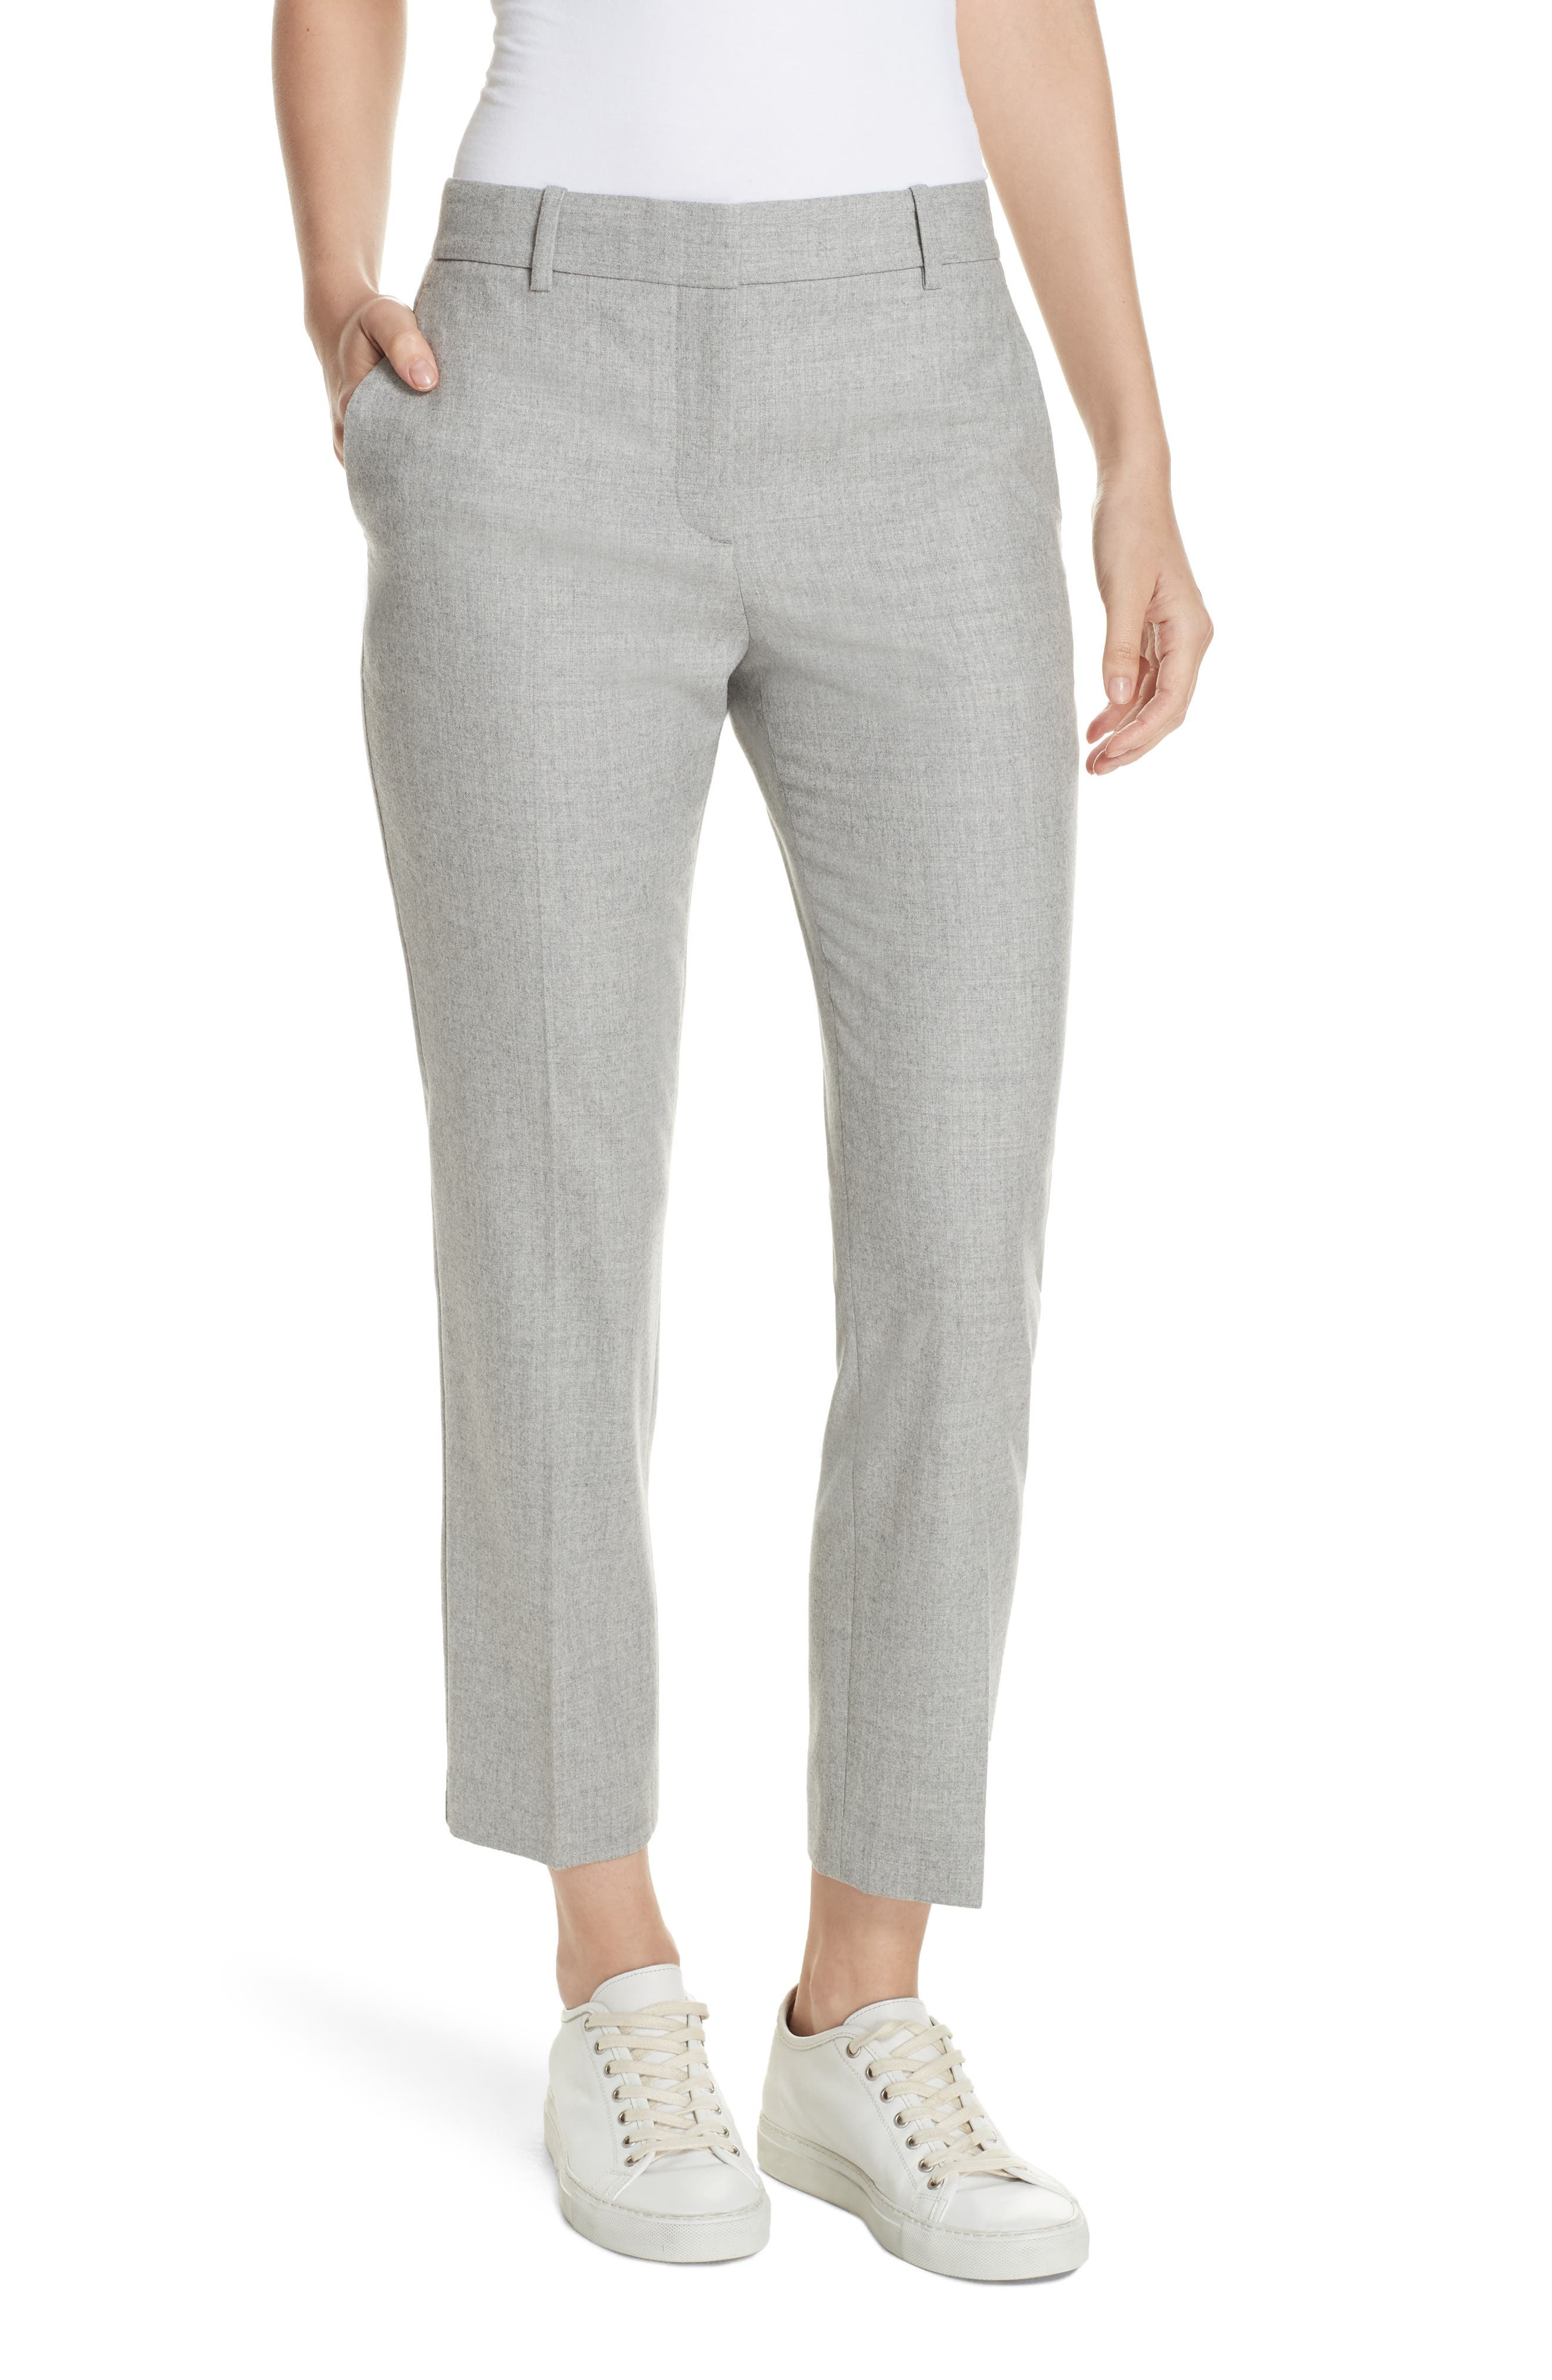 Treeca Flannel Ankle Pants,                             Main thumbnail 1, color,                             PALE GREY